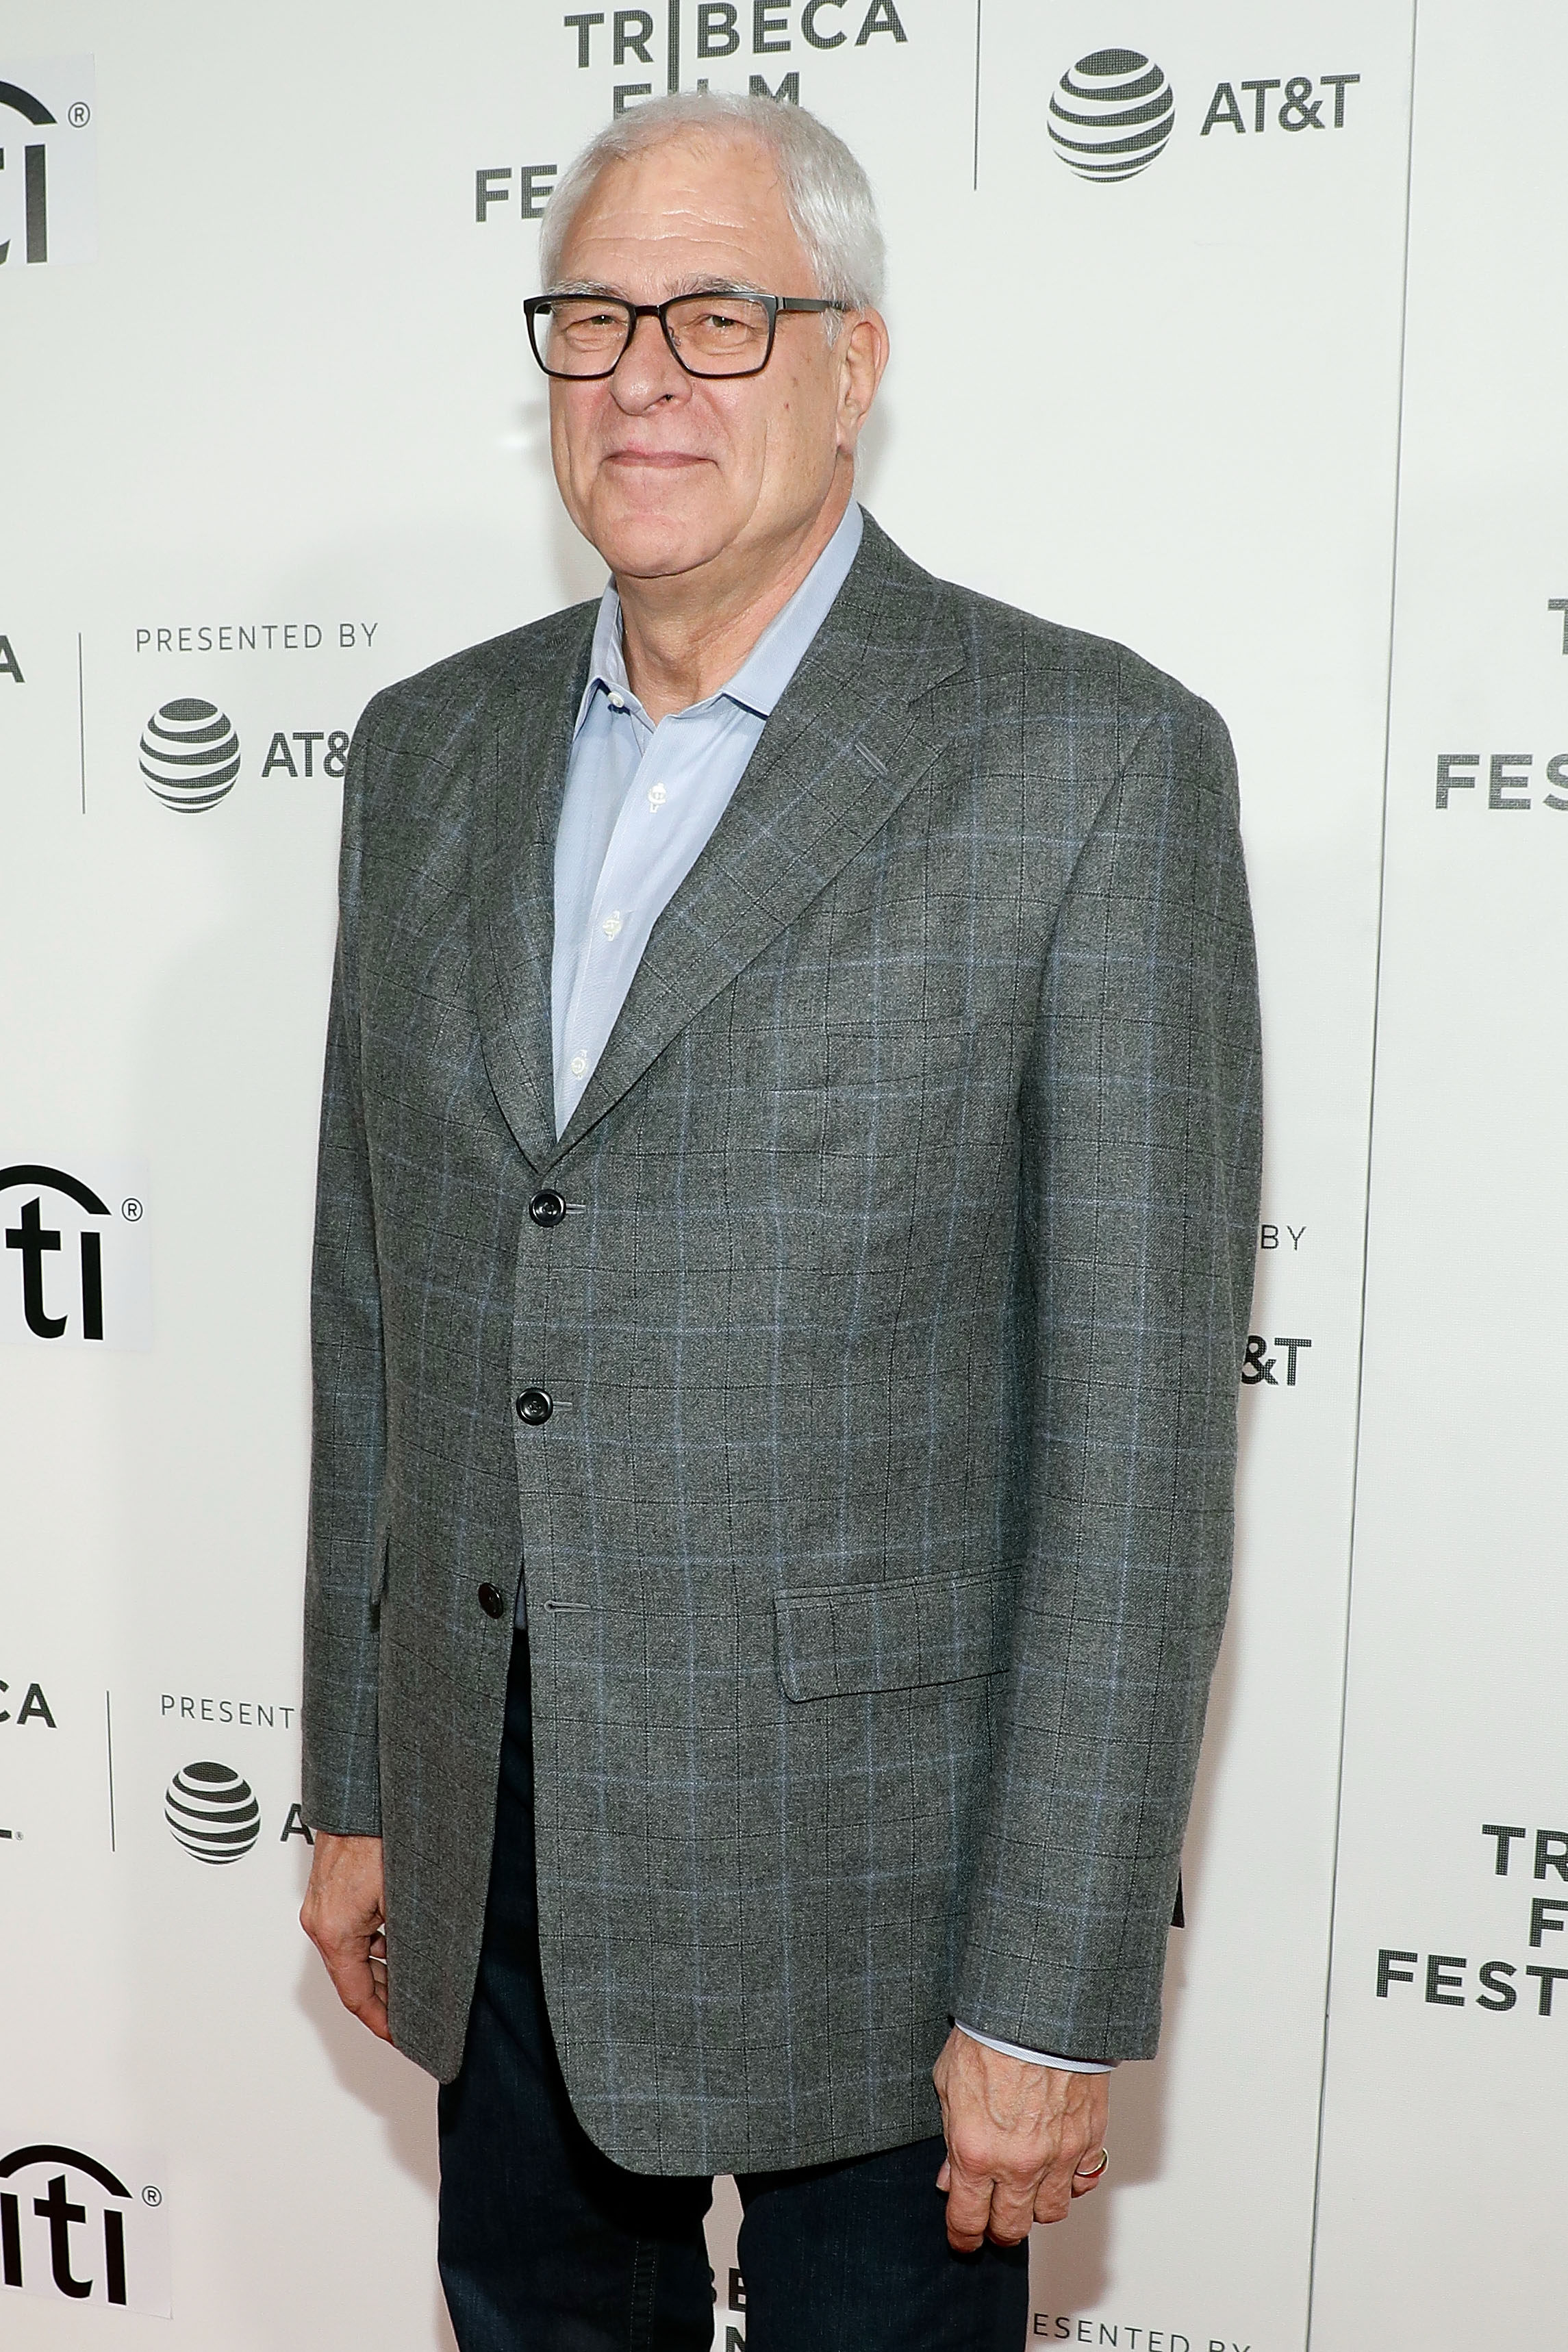 New York Knicks President Phil Jackson at Tribeca Talks during the 2017 Tribeca Film Festival at Borough of Manhattan Community College on April 23, 2017 | Photo: Getty Images